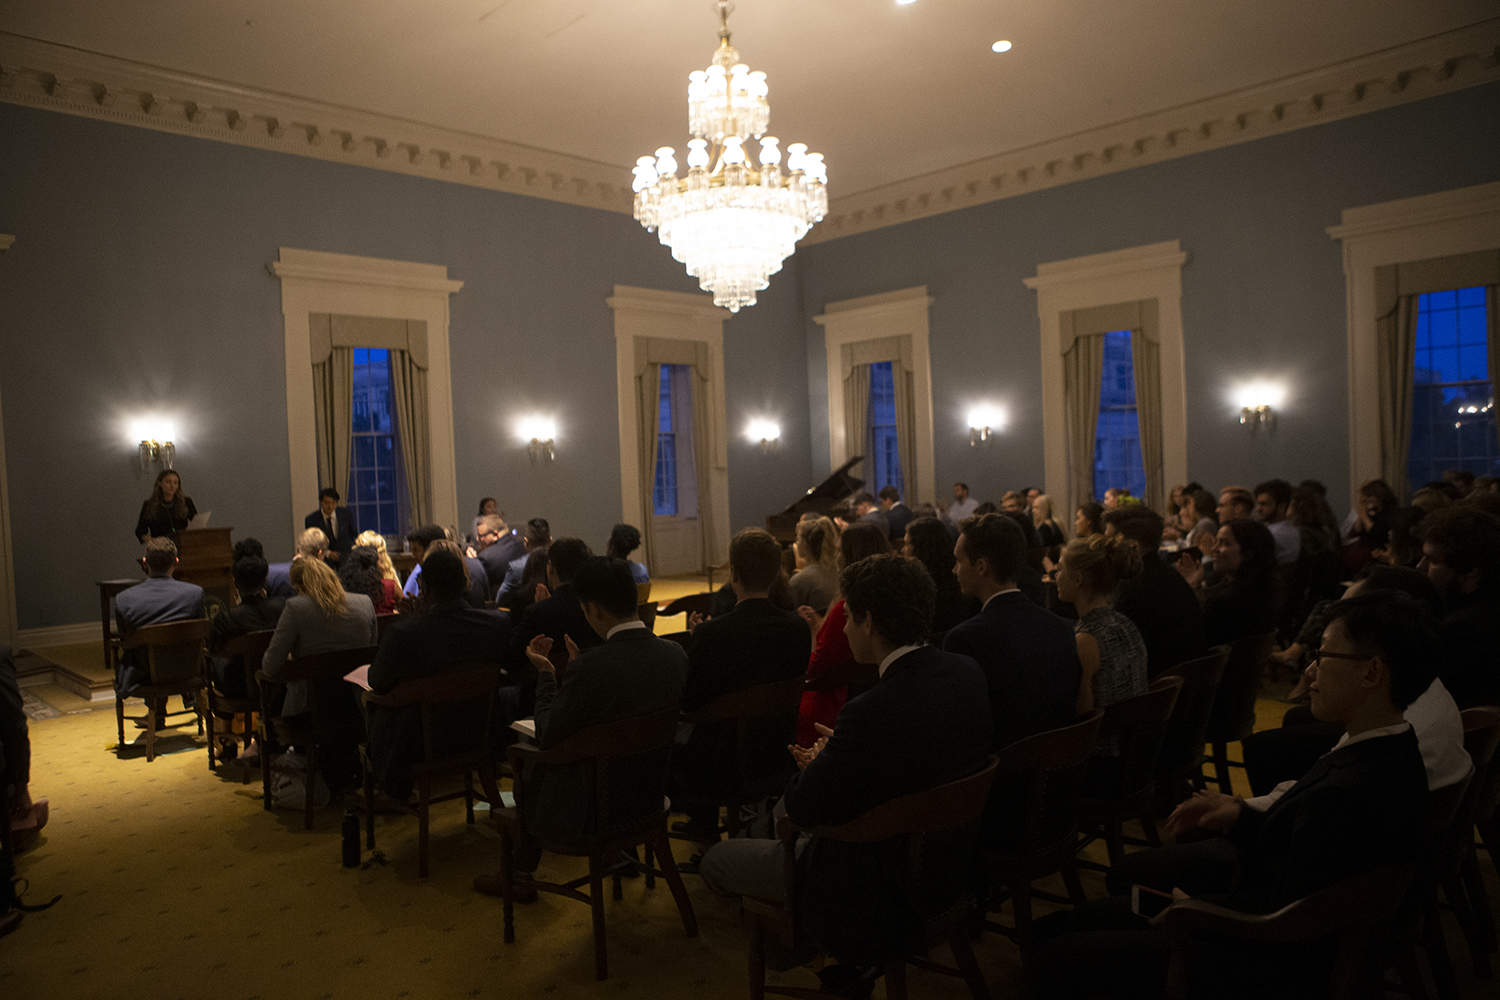 Senators vote on a joint resolution during a joint session of UISG and GPSG on Tuesday, Sept. 24, 2019. The two student governance bodies met to vote on three joint resolutions, which passed unanimously. (Emily Wangen/The Daily Iowan)